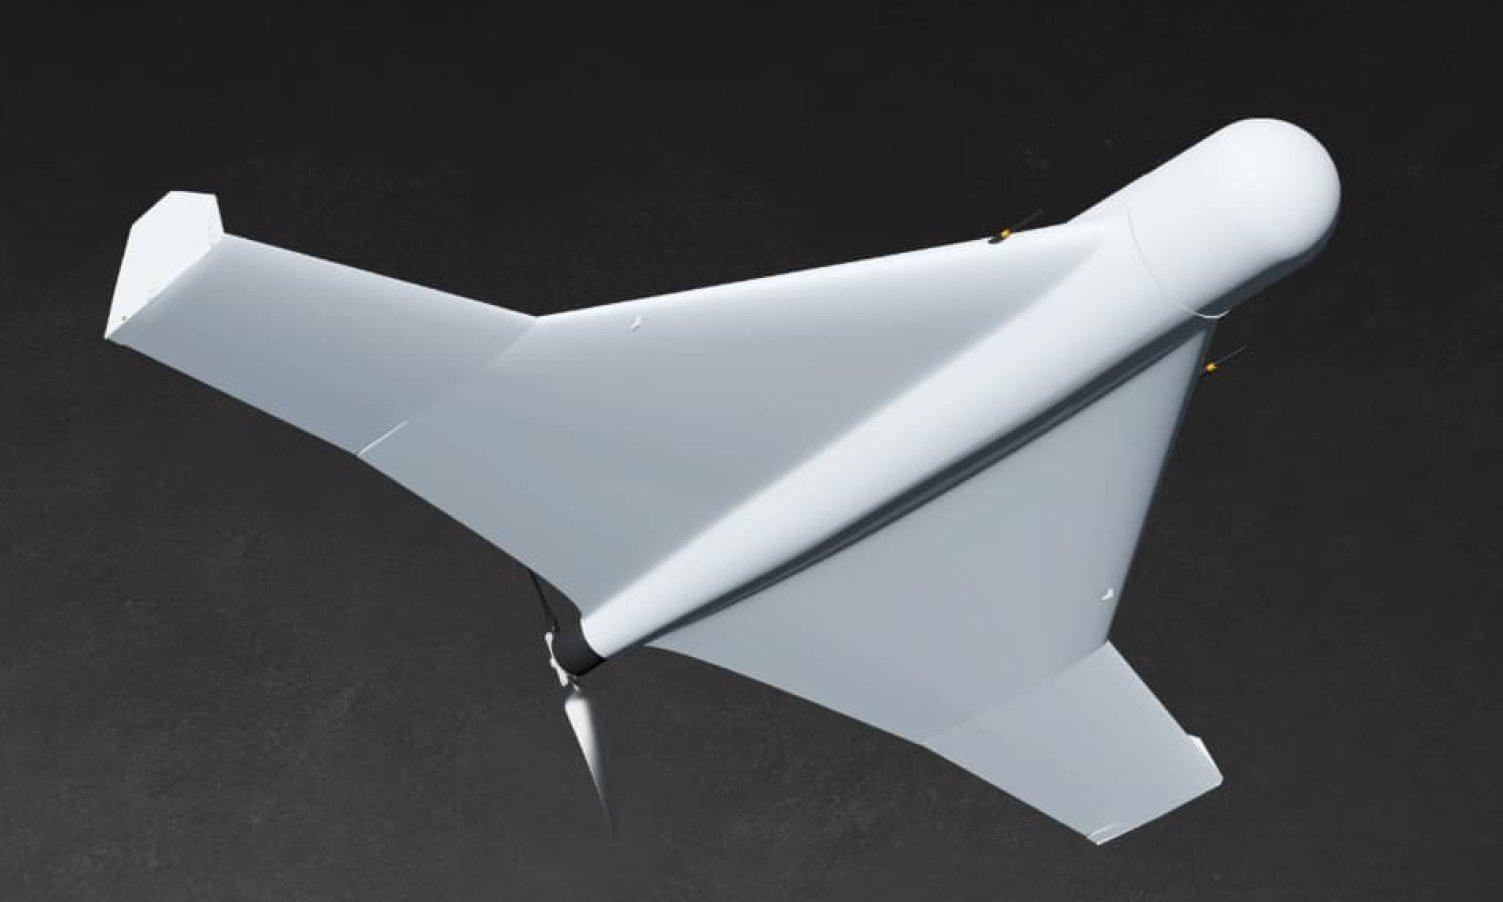 May I have a word about… the Kalashnikov kamikaze drone